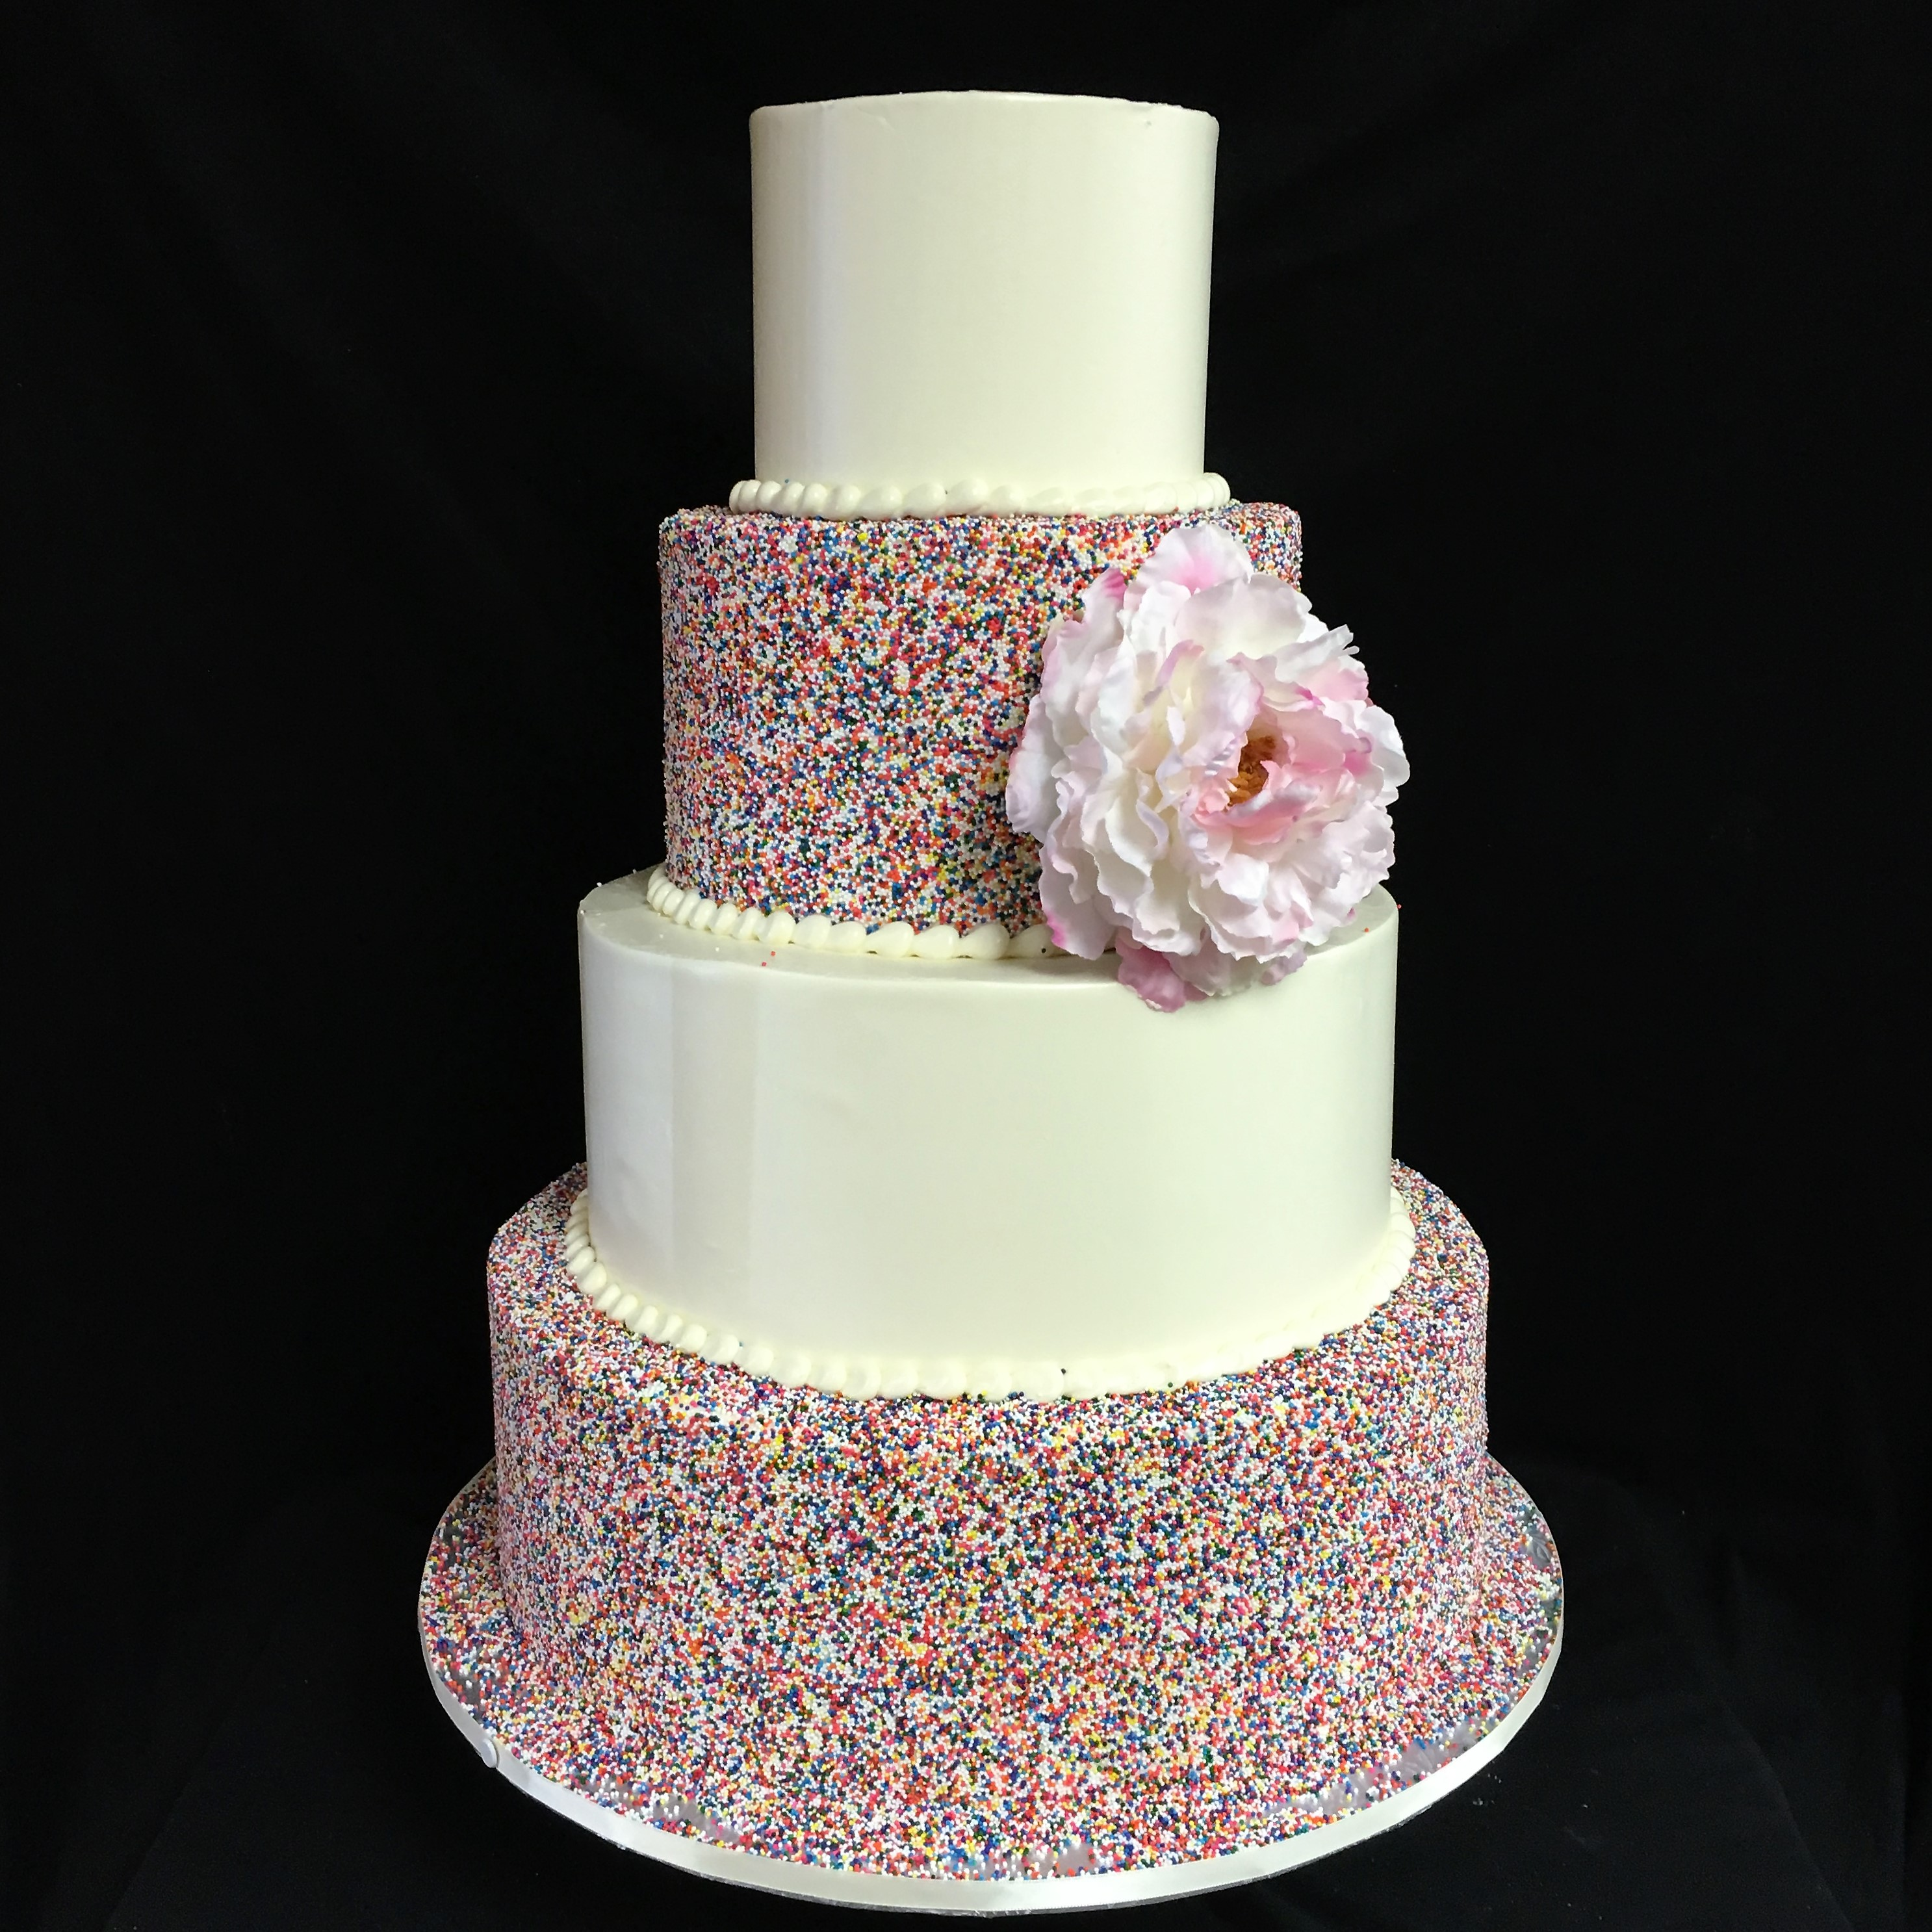 wedding cake nonpariels (3)